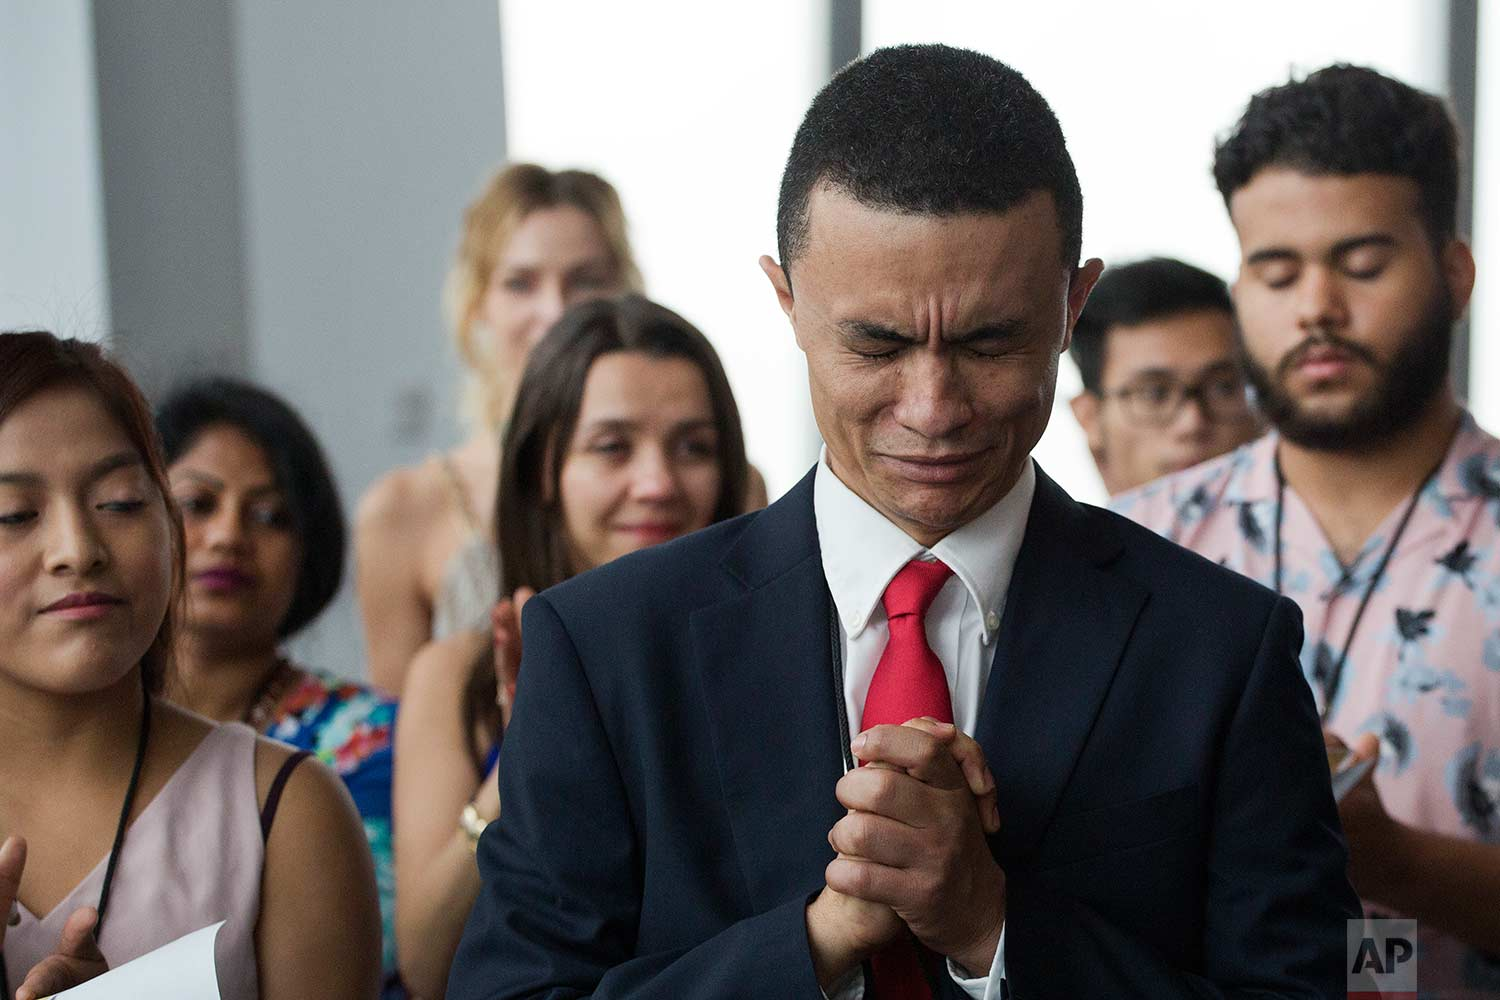 Gleidson Hoffman, originally from Brazil, becomes emotional during his naturalization ceremony, Tuesday, Aug. 15, 2017, in New York. (AP Photo/Mark Lennihan)